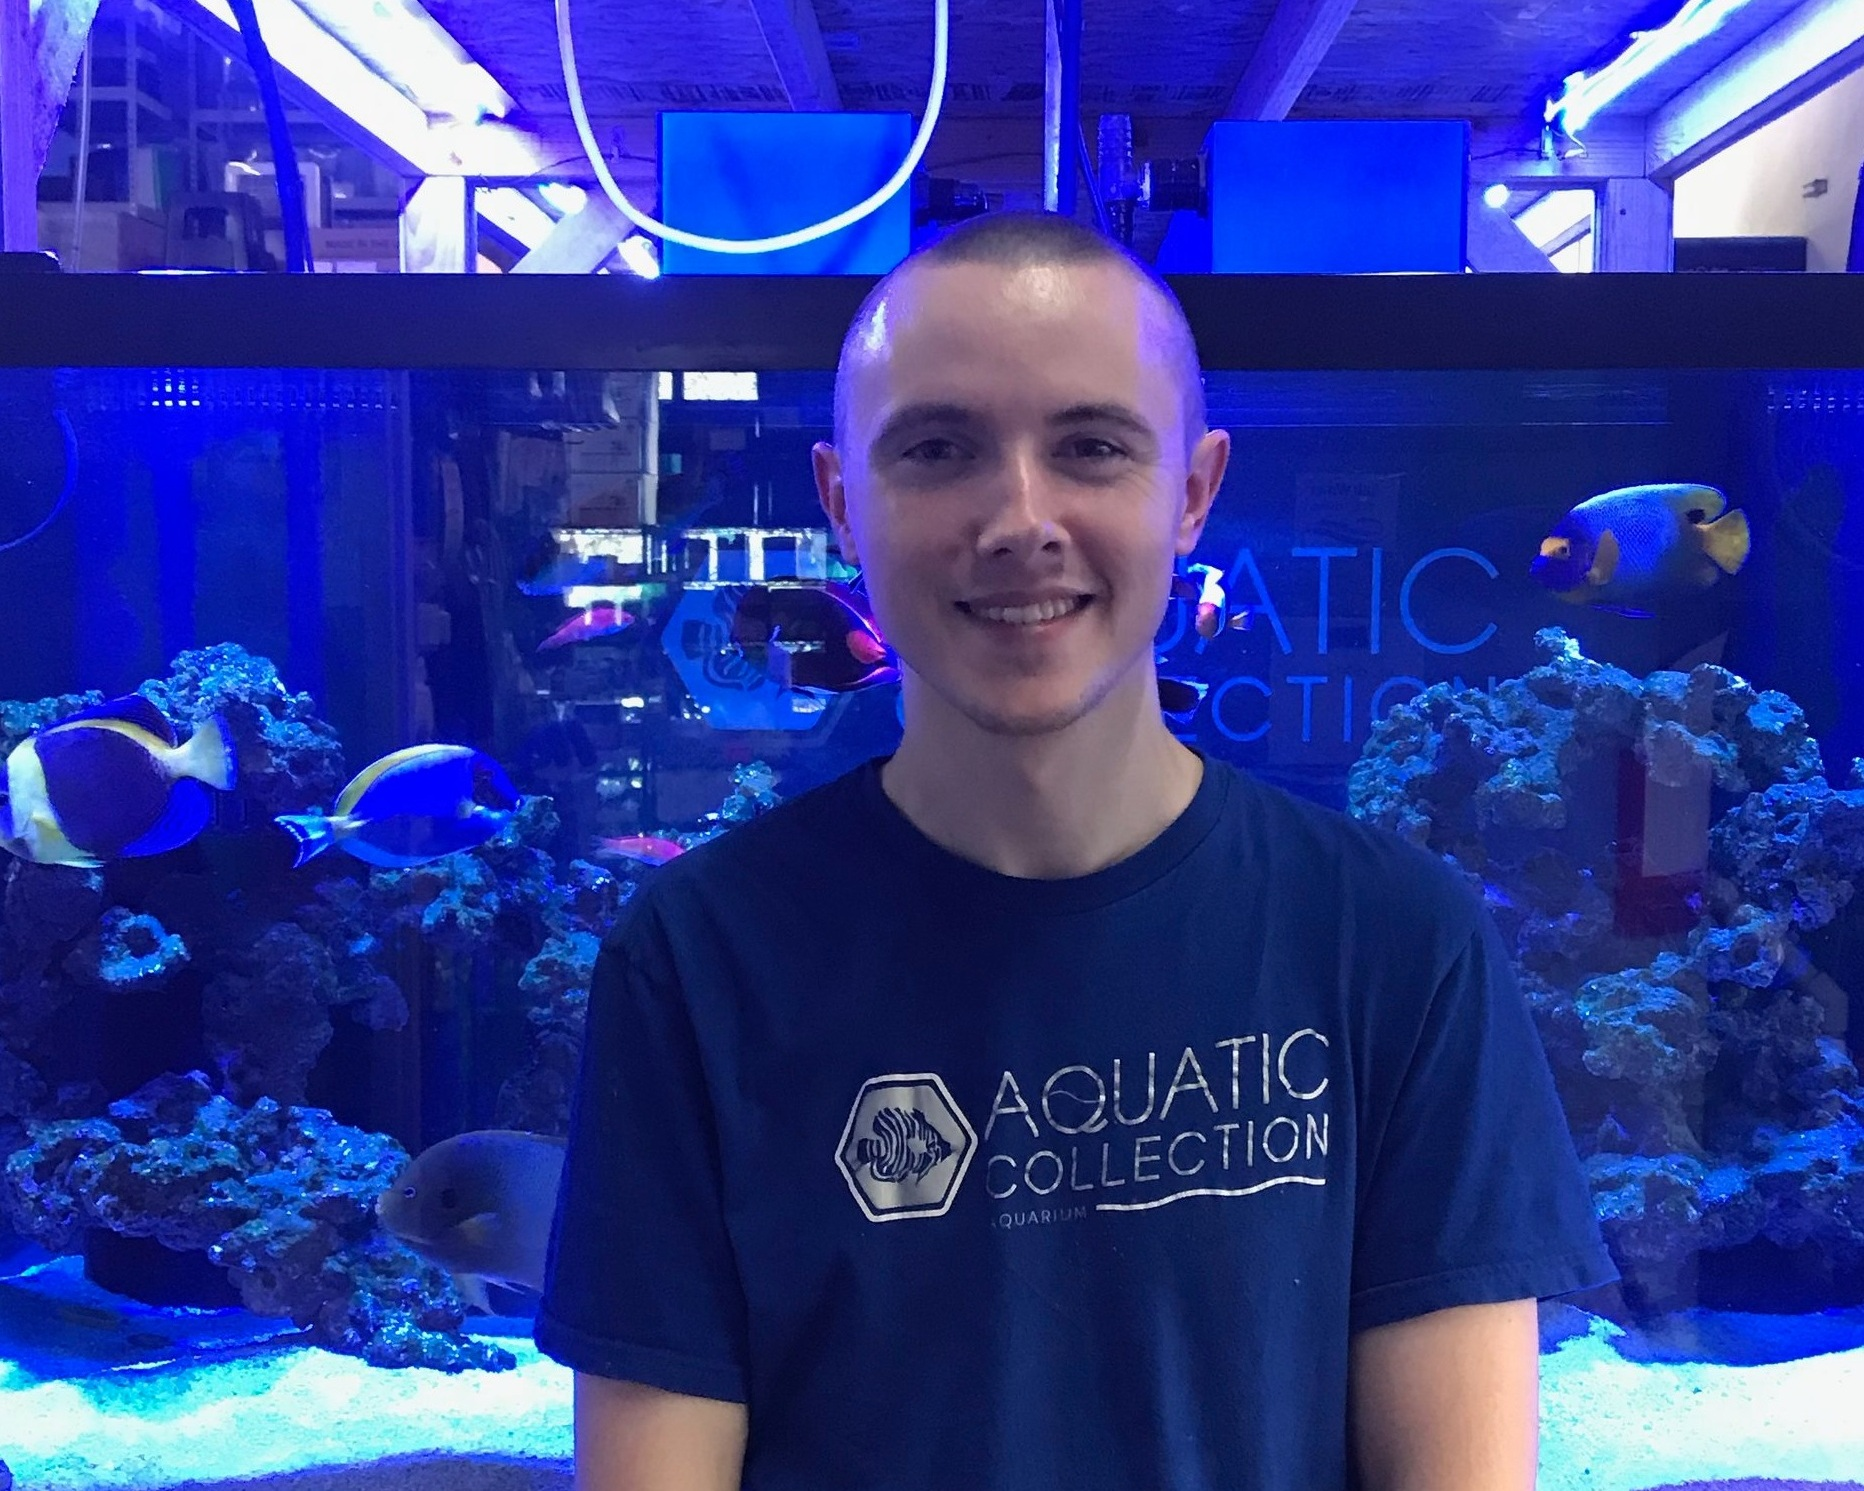 Colby - Colby has been working at Aquatic Collection for three years. He has been keeping fish tanks since he was ten years old, but got serious about growing coral eight years ago. Colby's favorite coral are mushrooms and he loves wrasses. Not only does Colby know a ton about coral, but he's also a total freshwater expert! Stop by and say